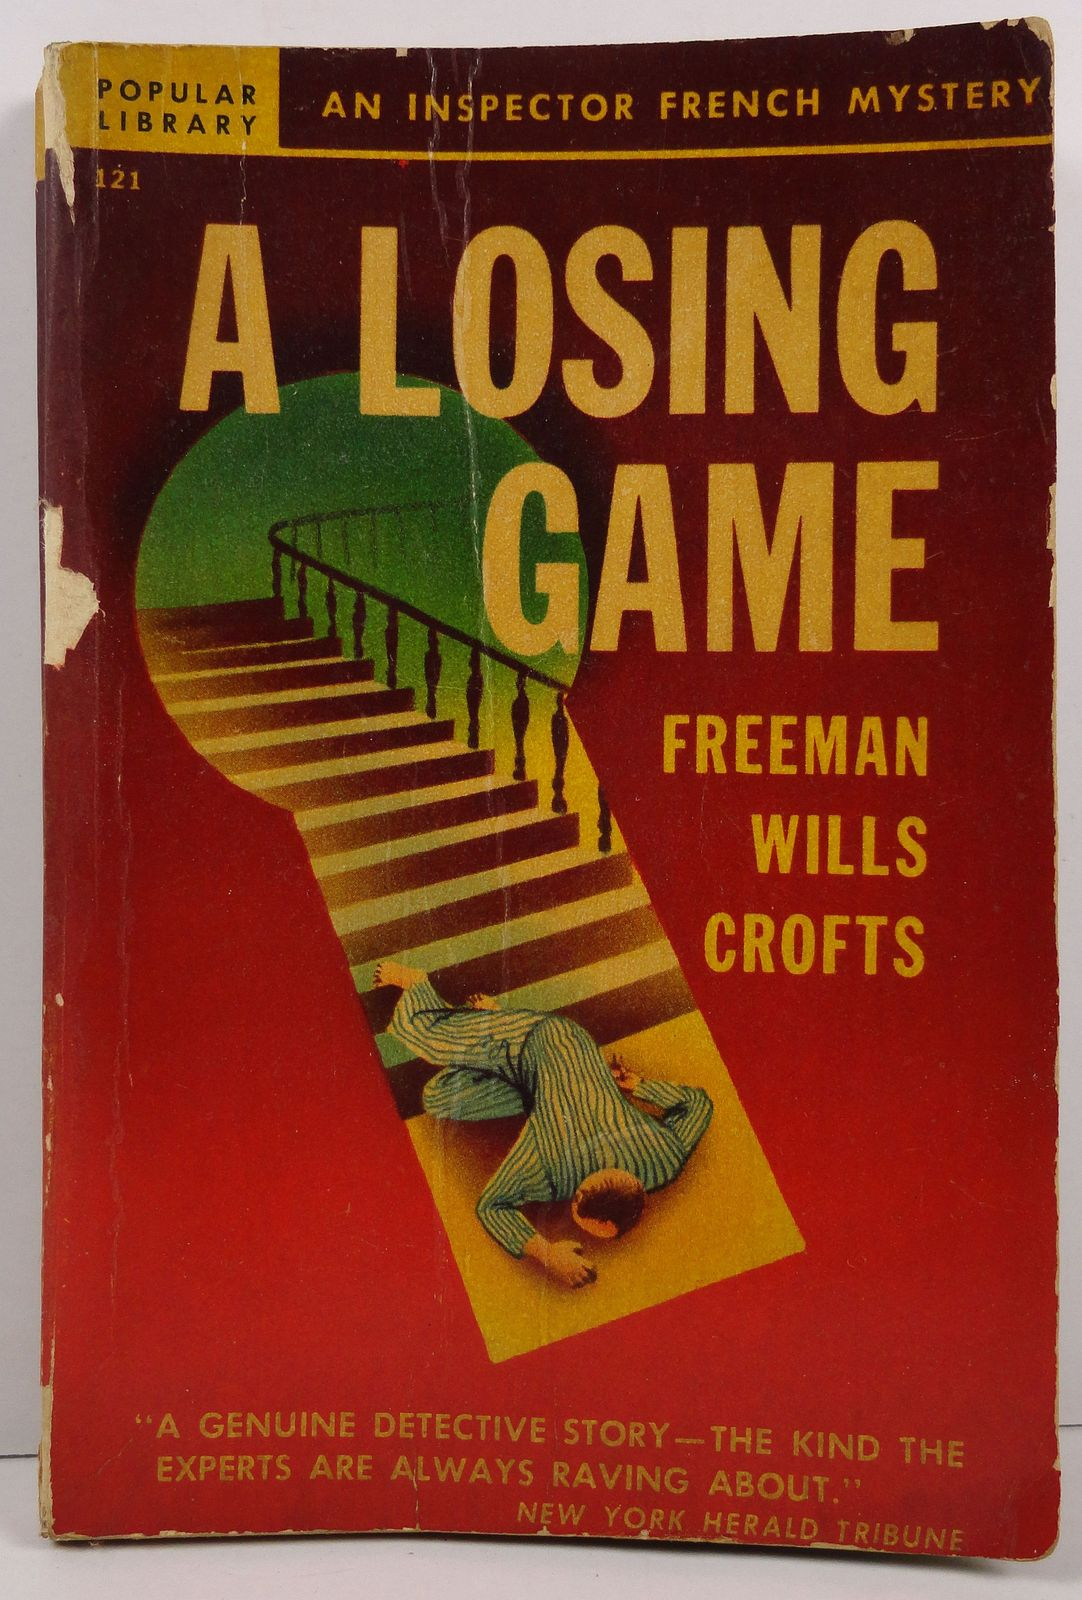 A Losing Game by Freeman Wills Crofts Popular Library 121